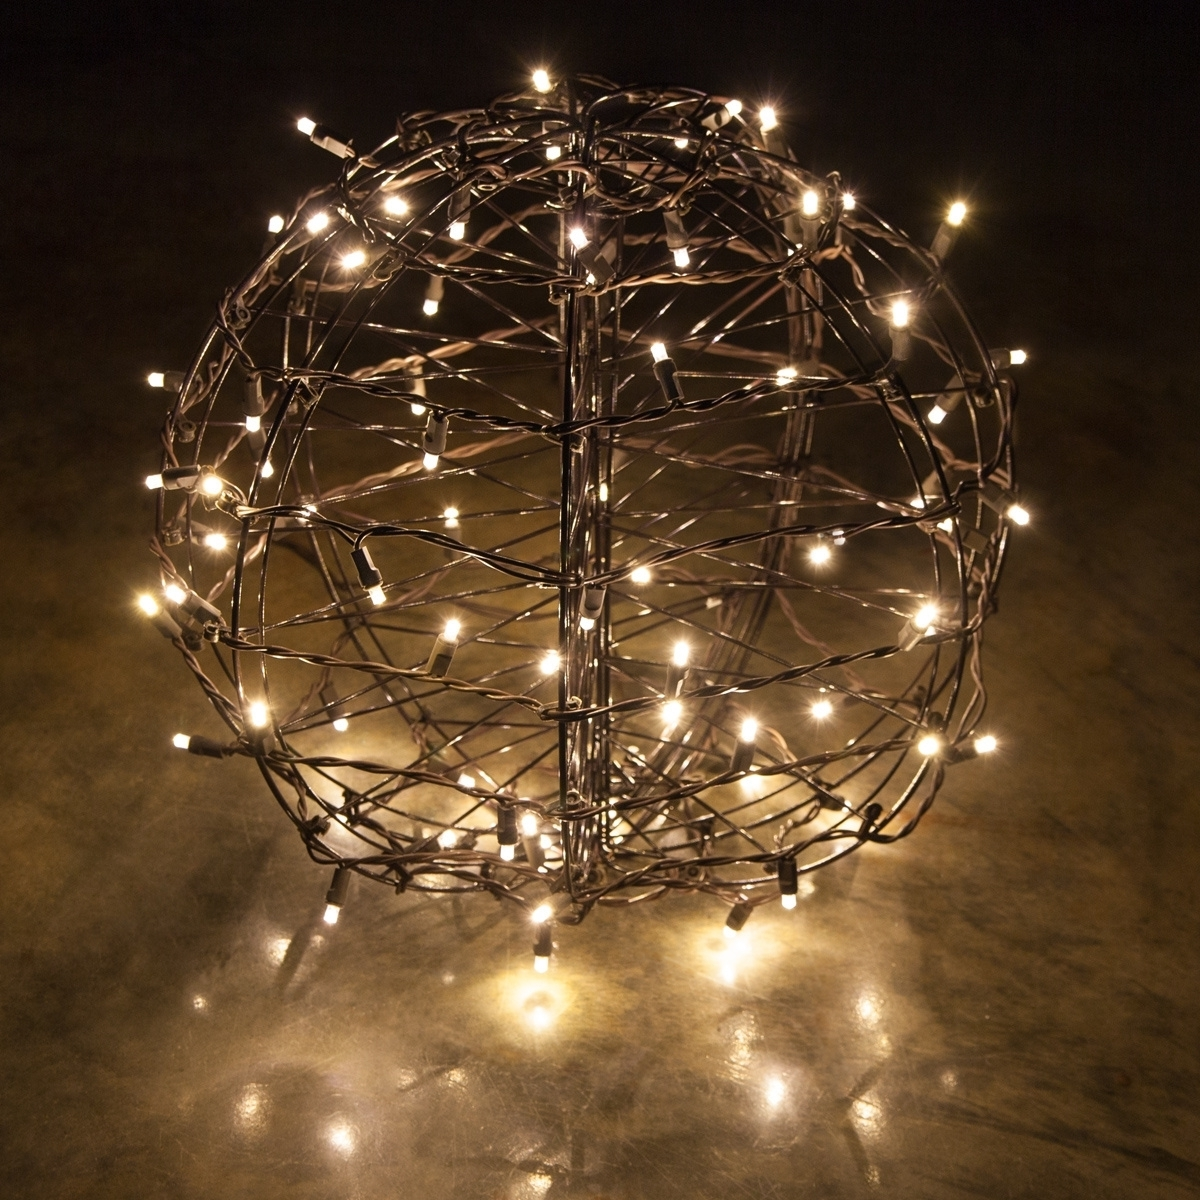 Hanging Outdoor Christmas Lights In Trees Inside Well Liked Outdoor Hanging Sphere Lights • Outdoor Lighting (Gallery 12 of 20)